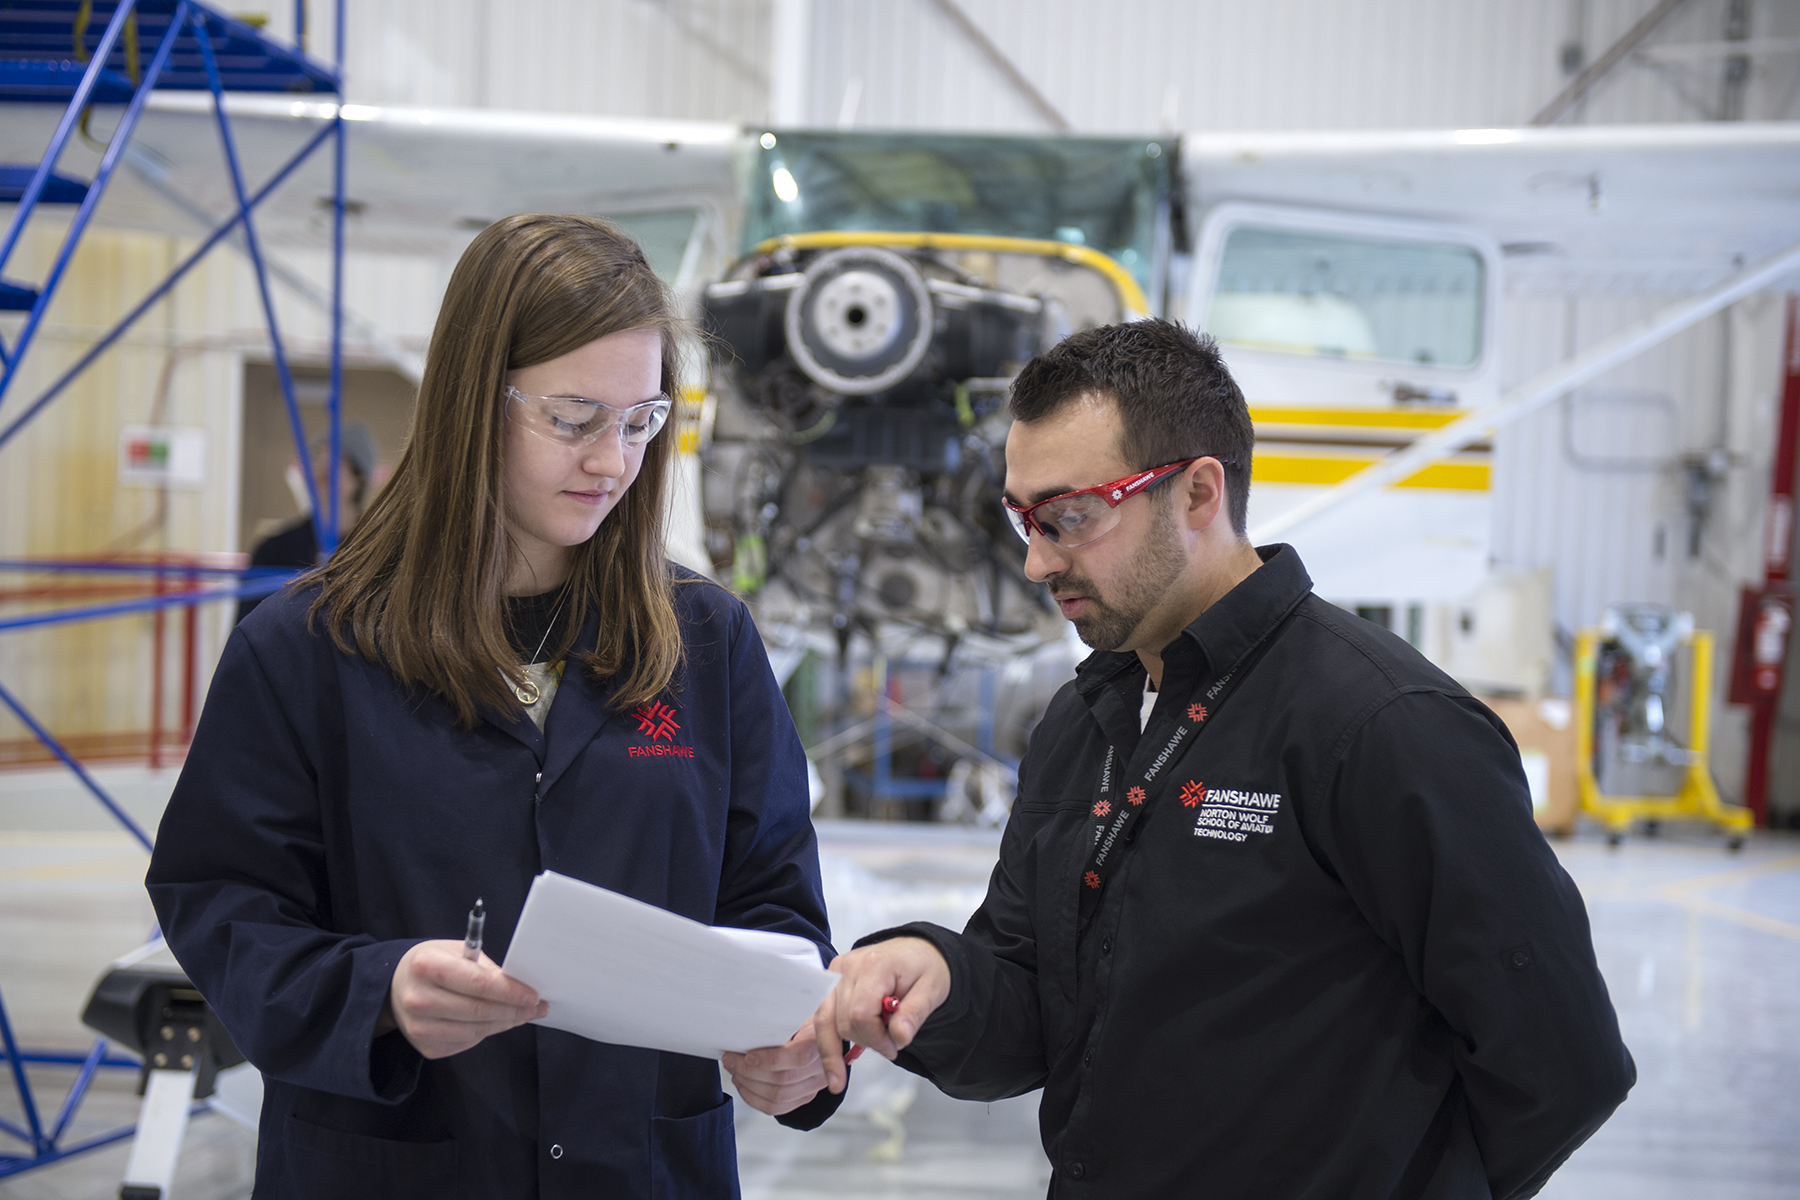 A student and instructor review documents at Fanshawe College's maintenance hangar